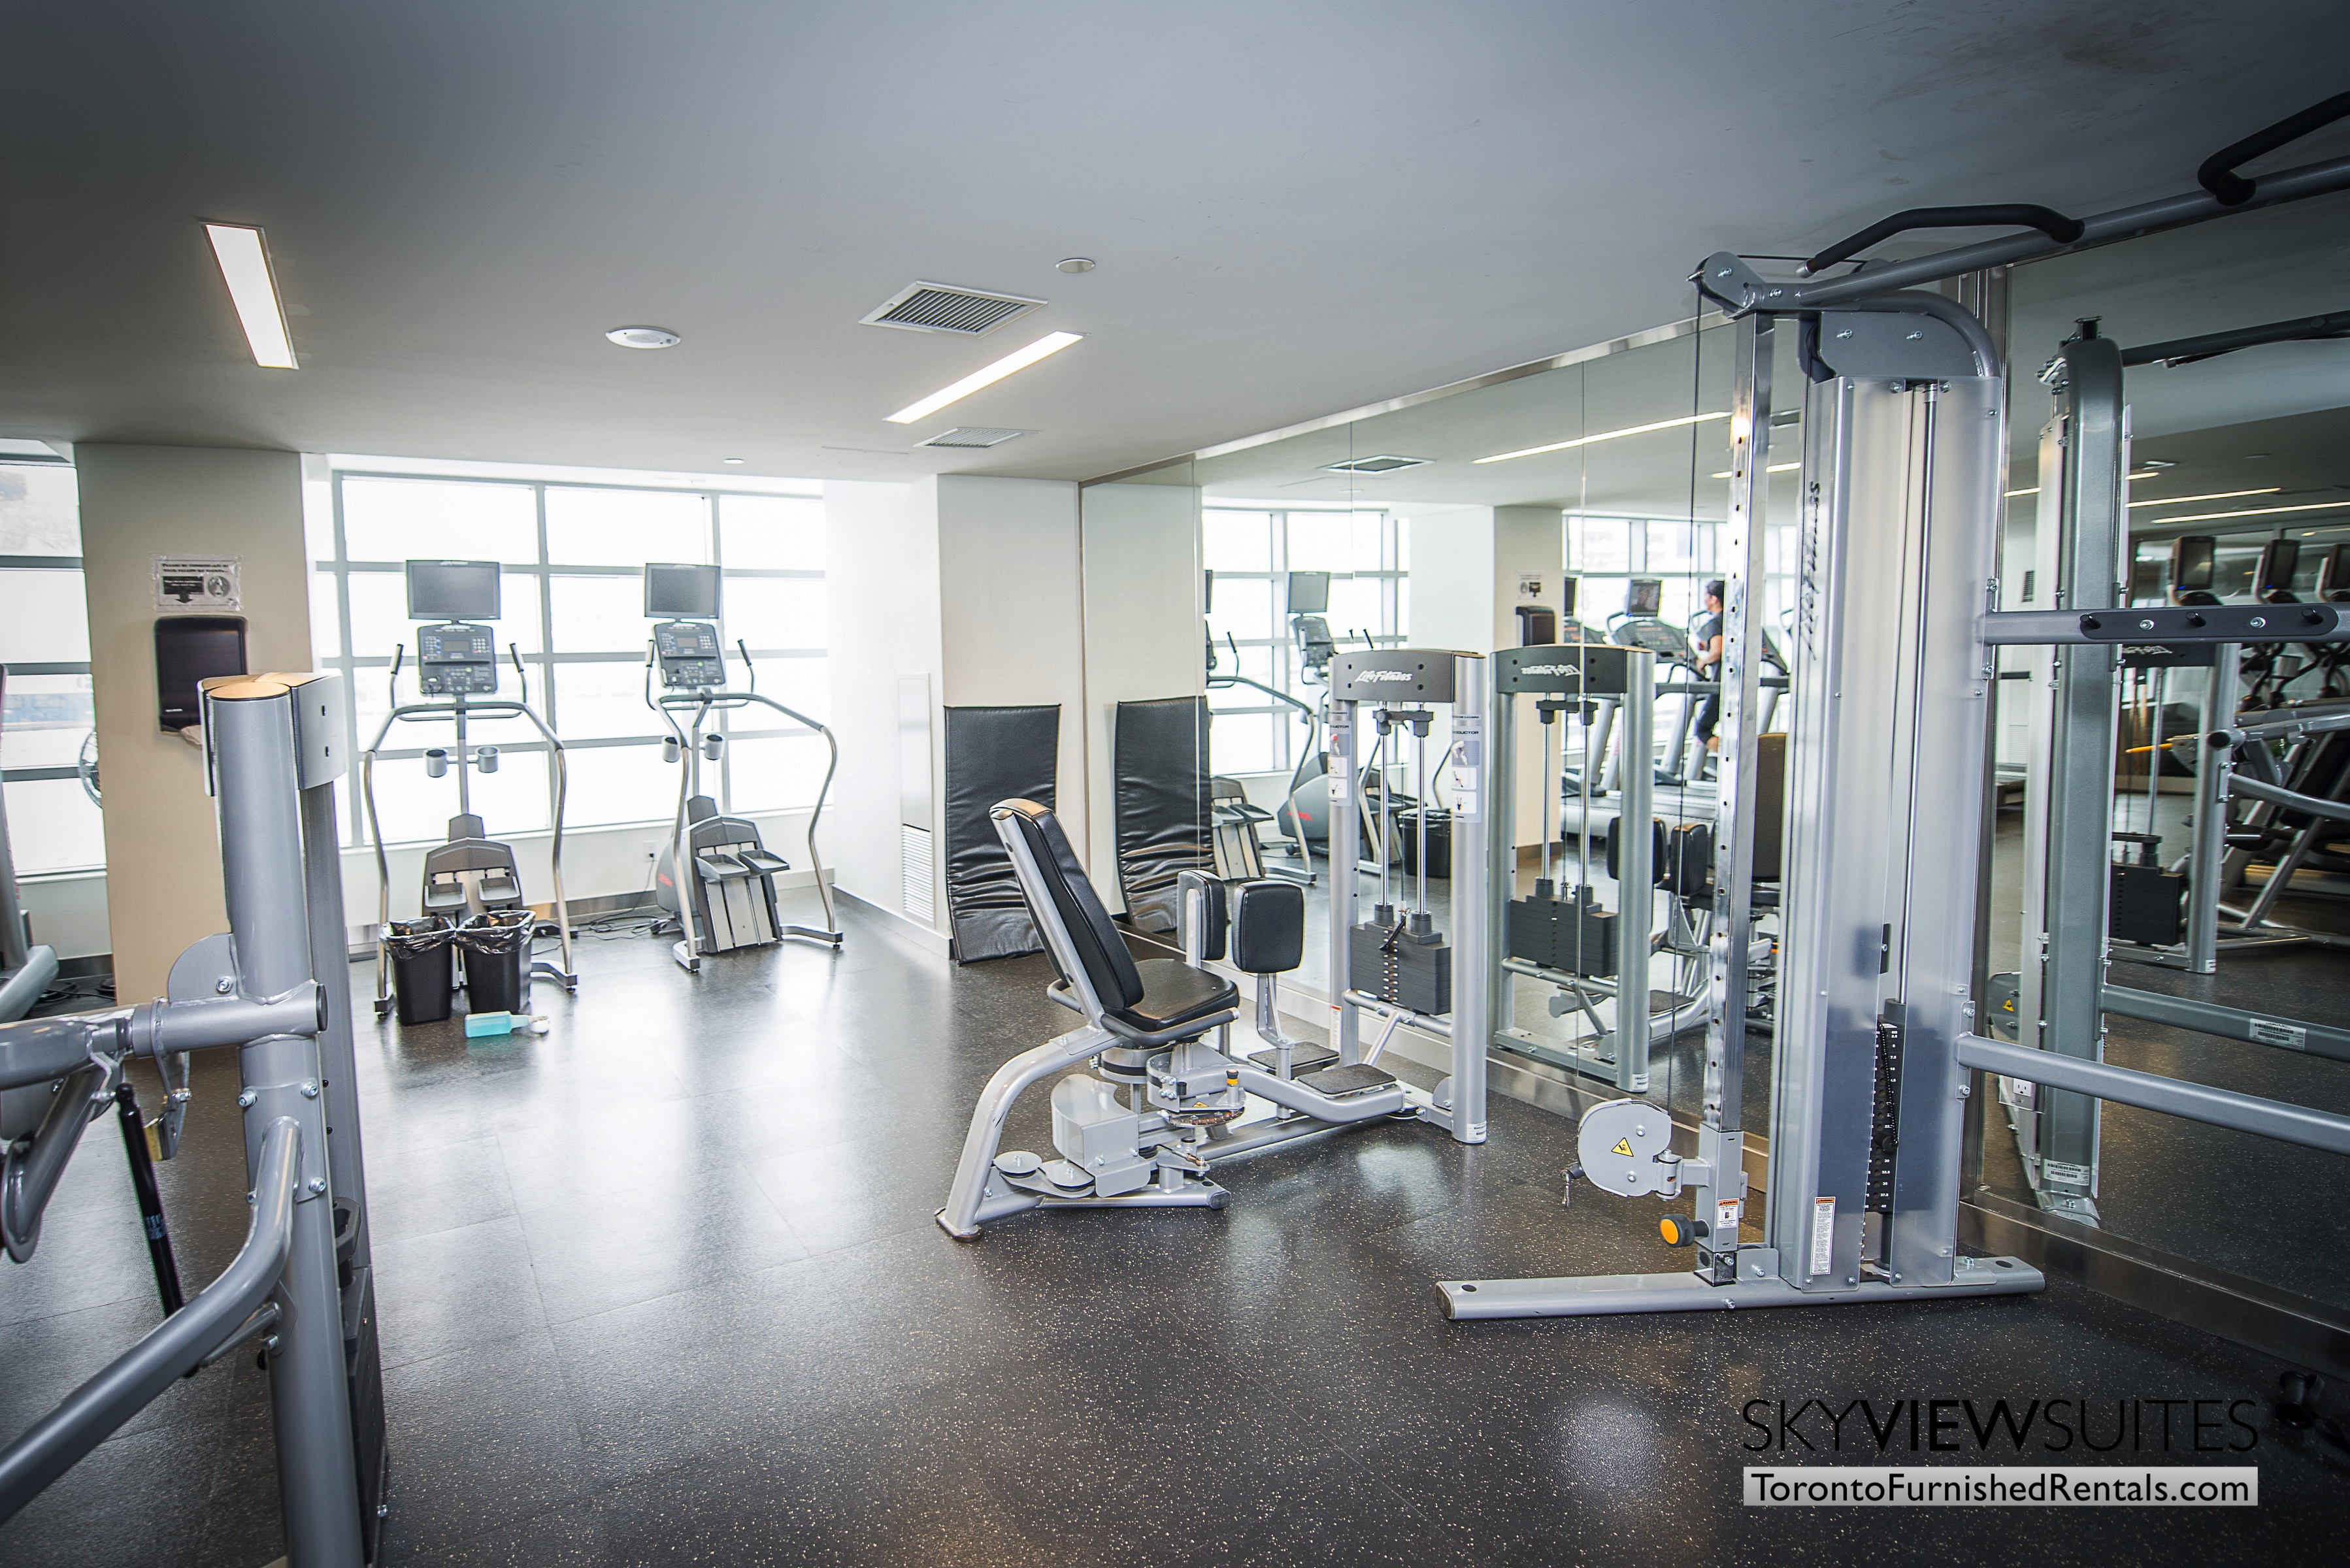 furnished apartments toronto parade fitness centre